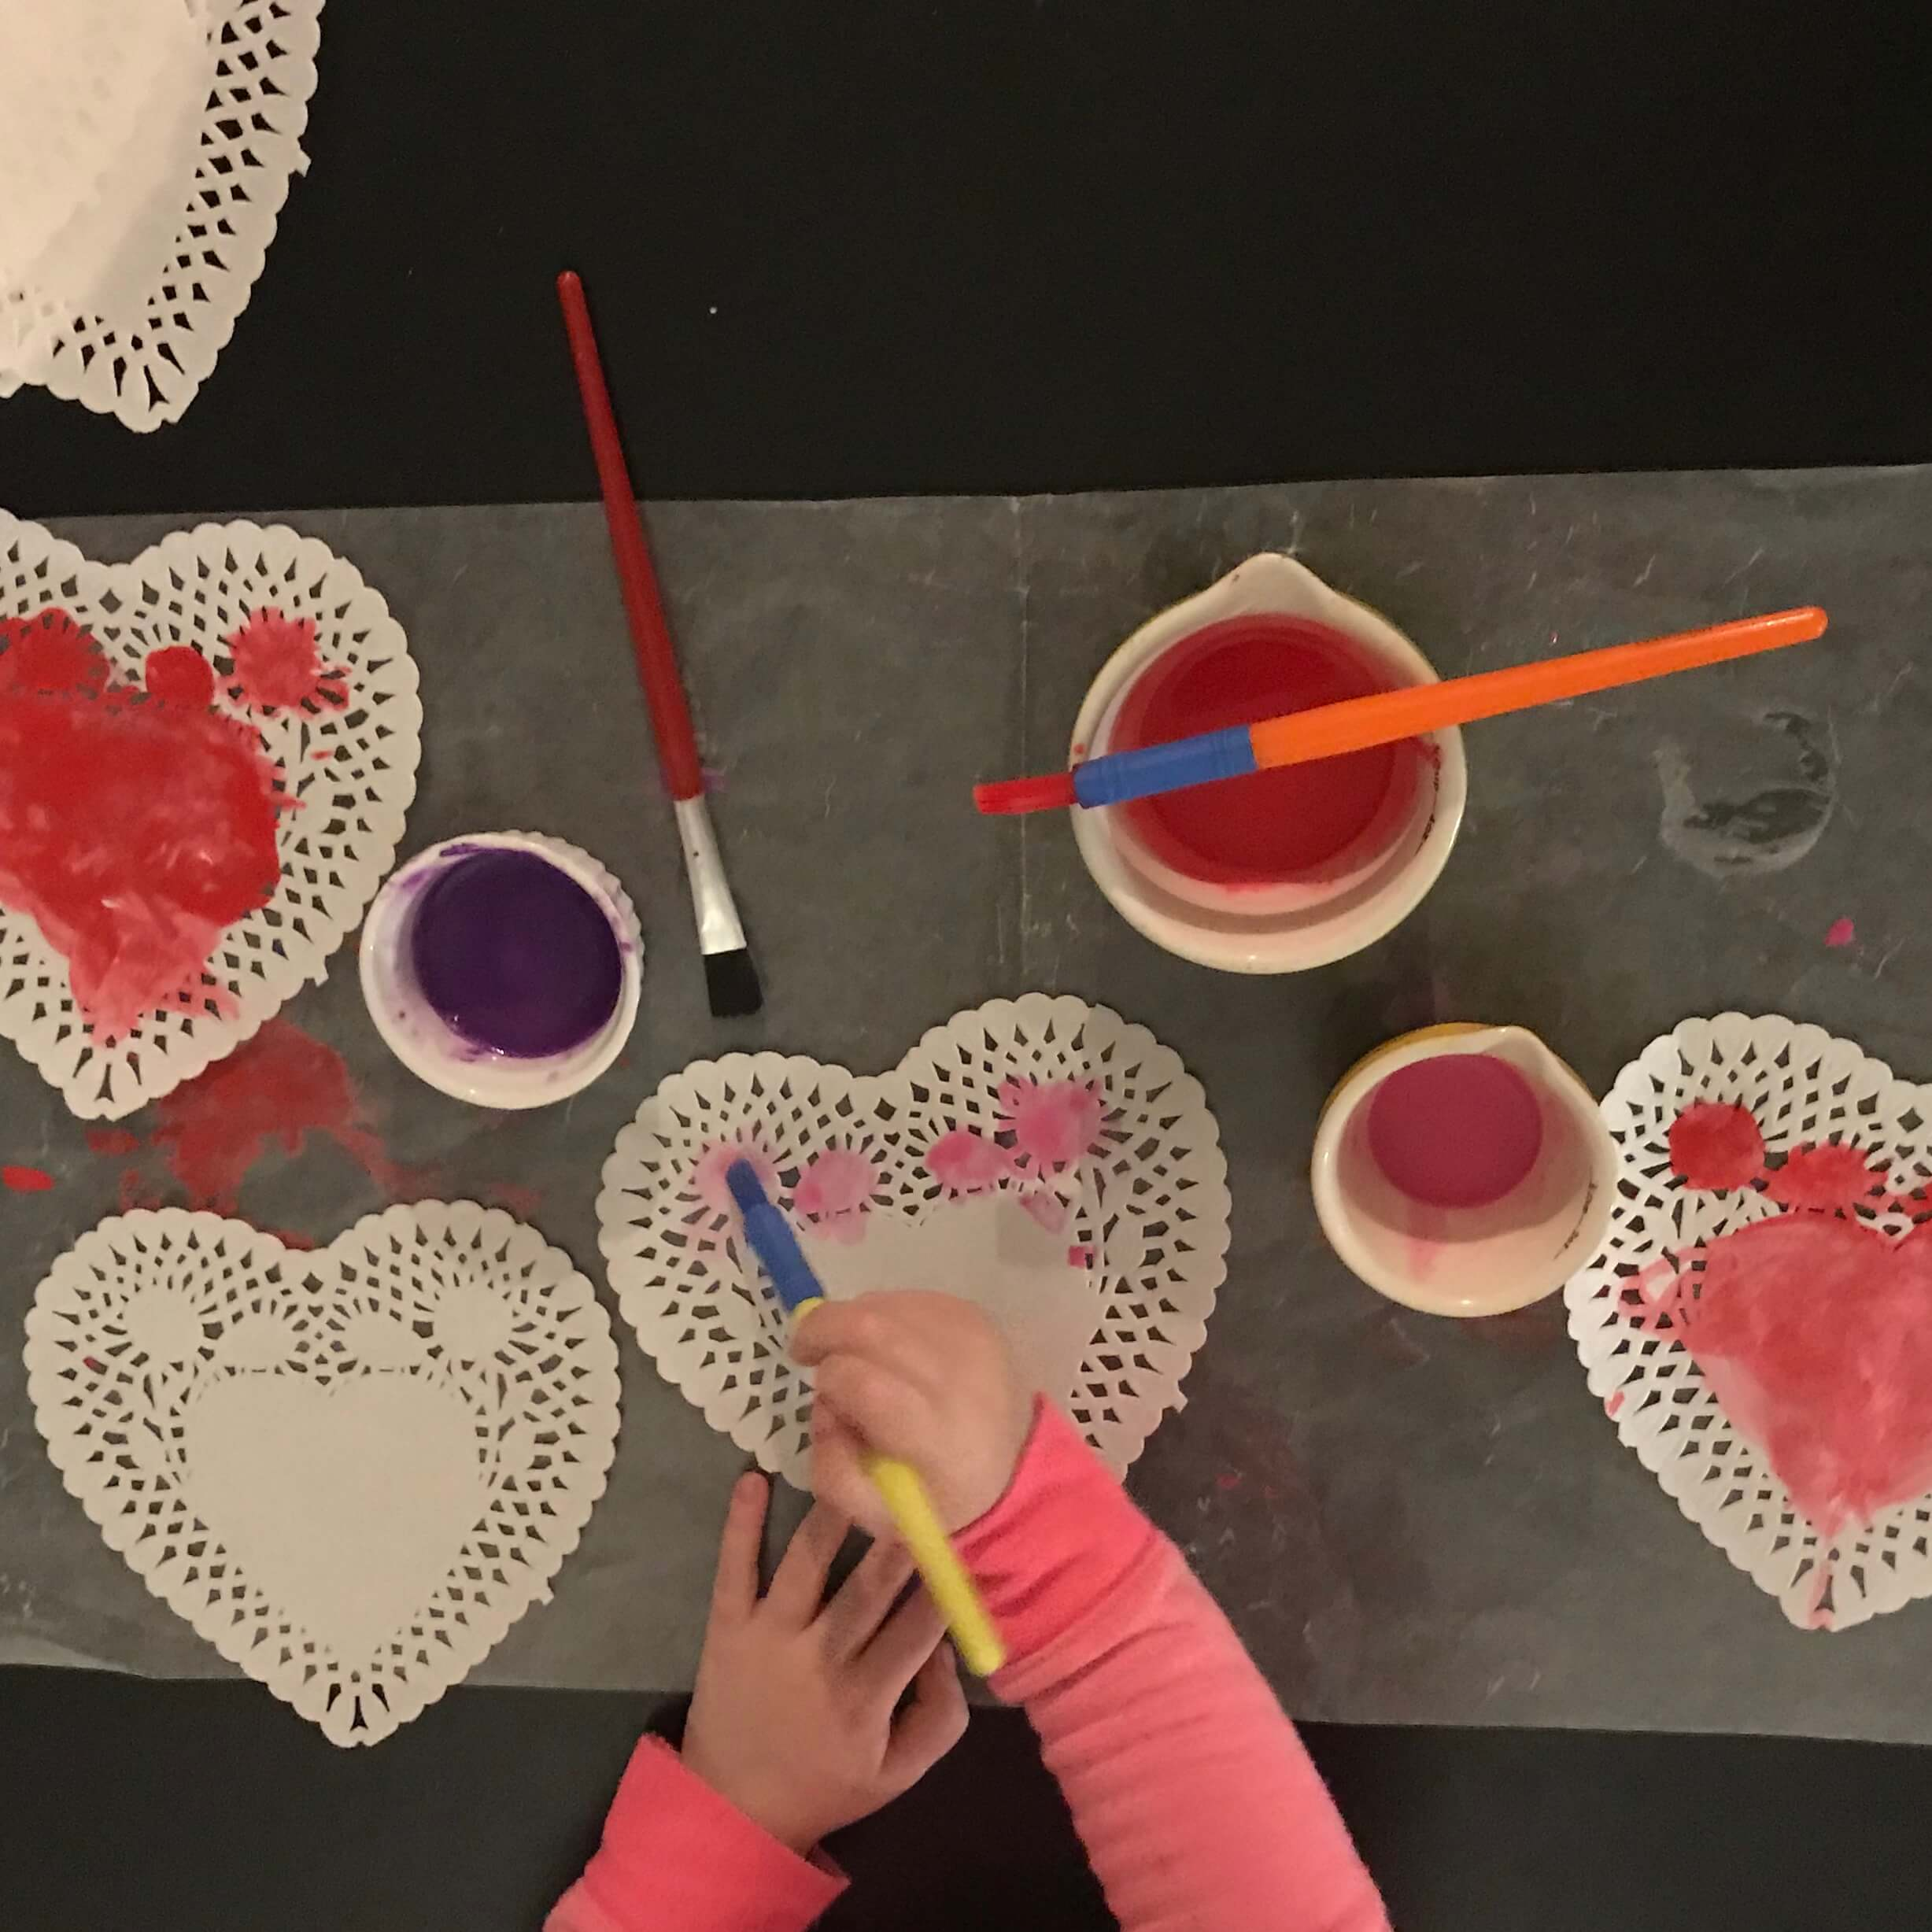 Toddler painting heart shaped doilies